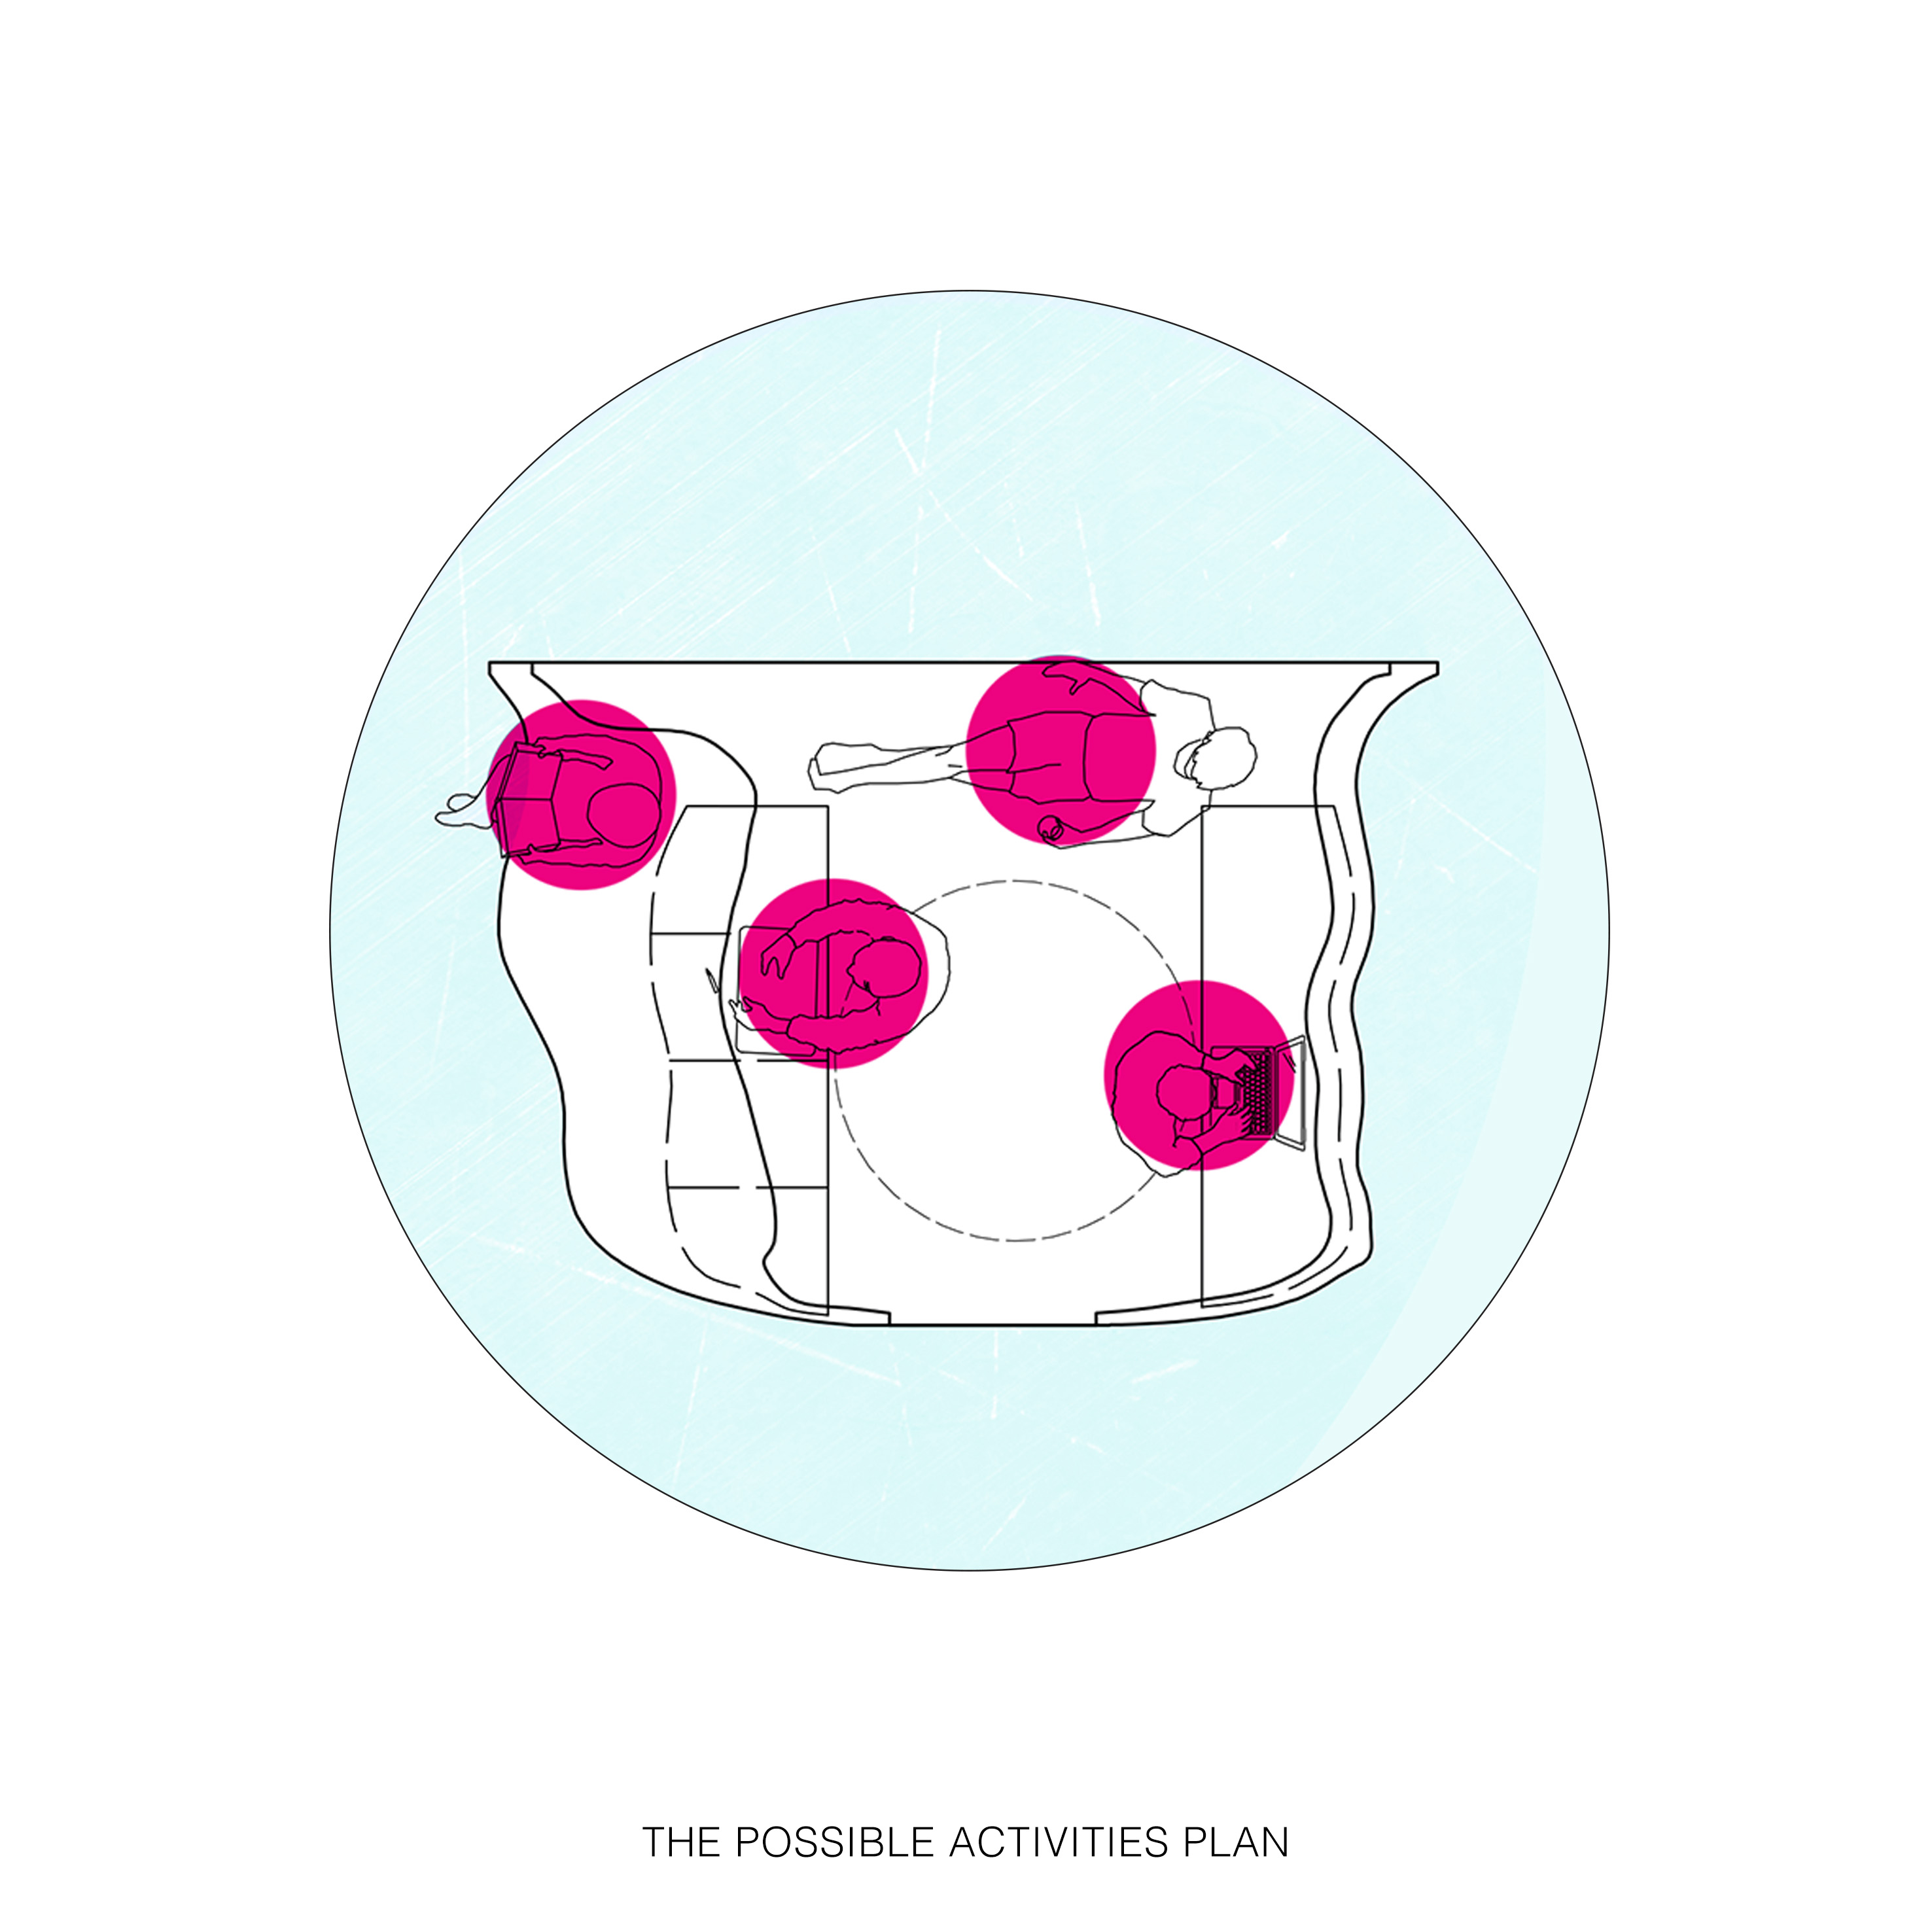 24_THE POSSIBLE ACTIVITIES PLAN